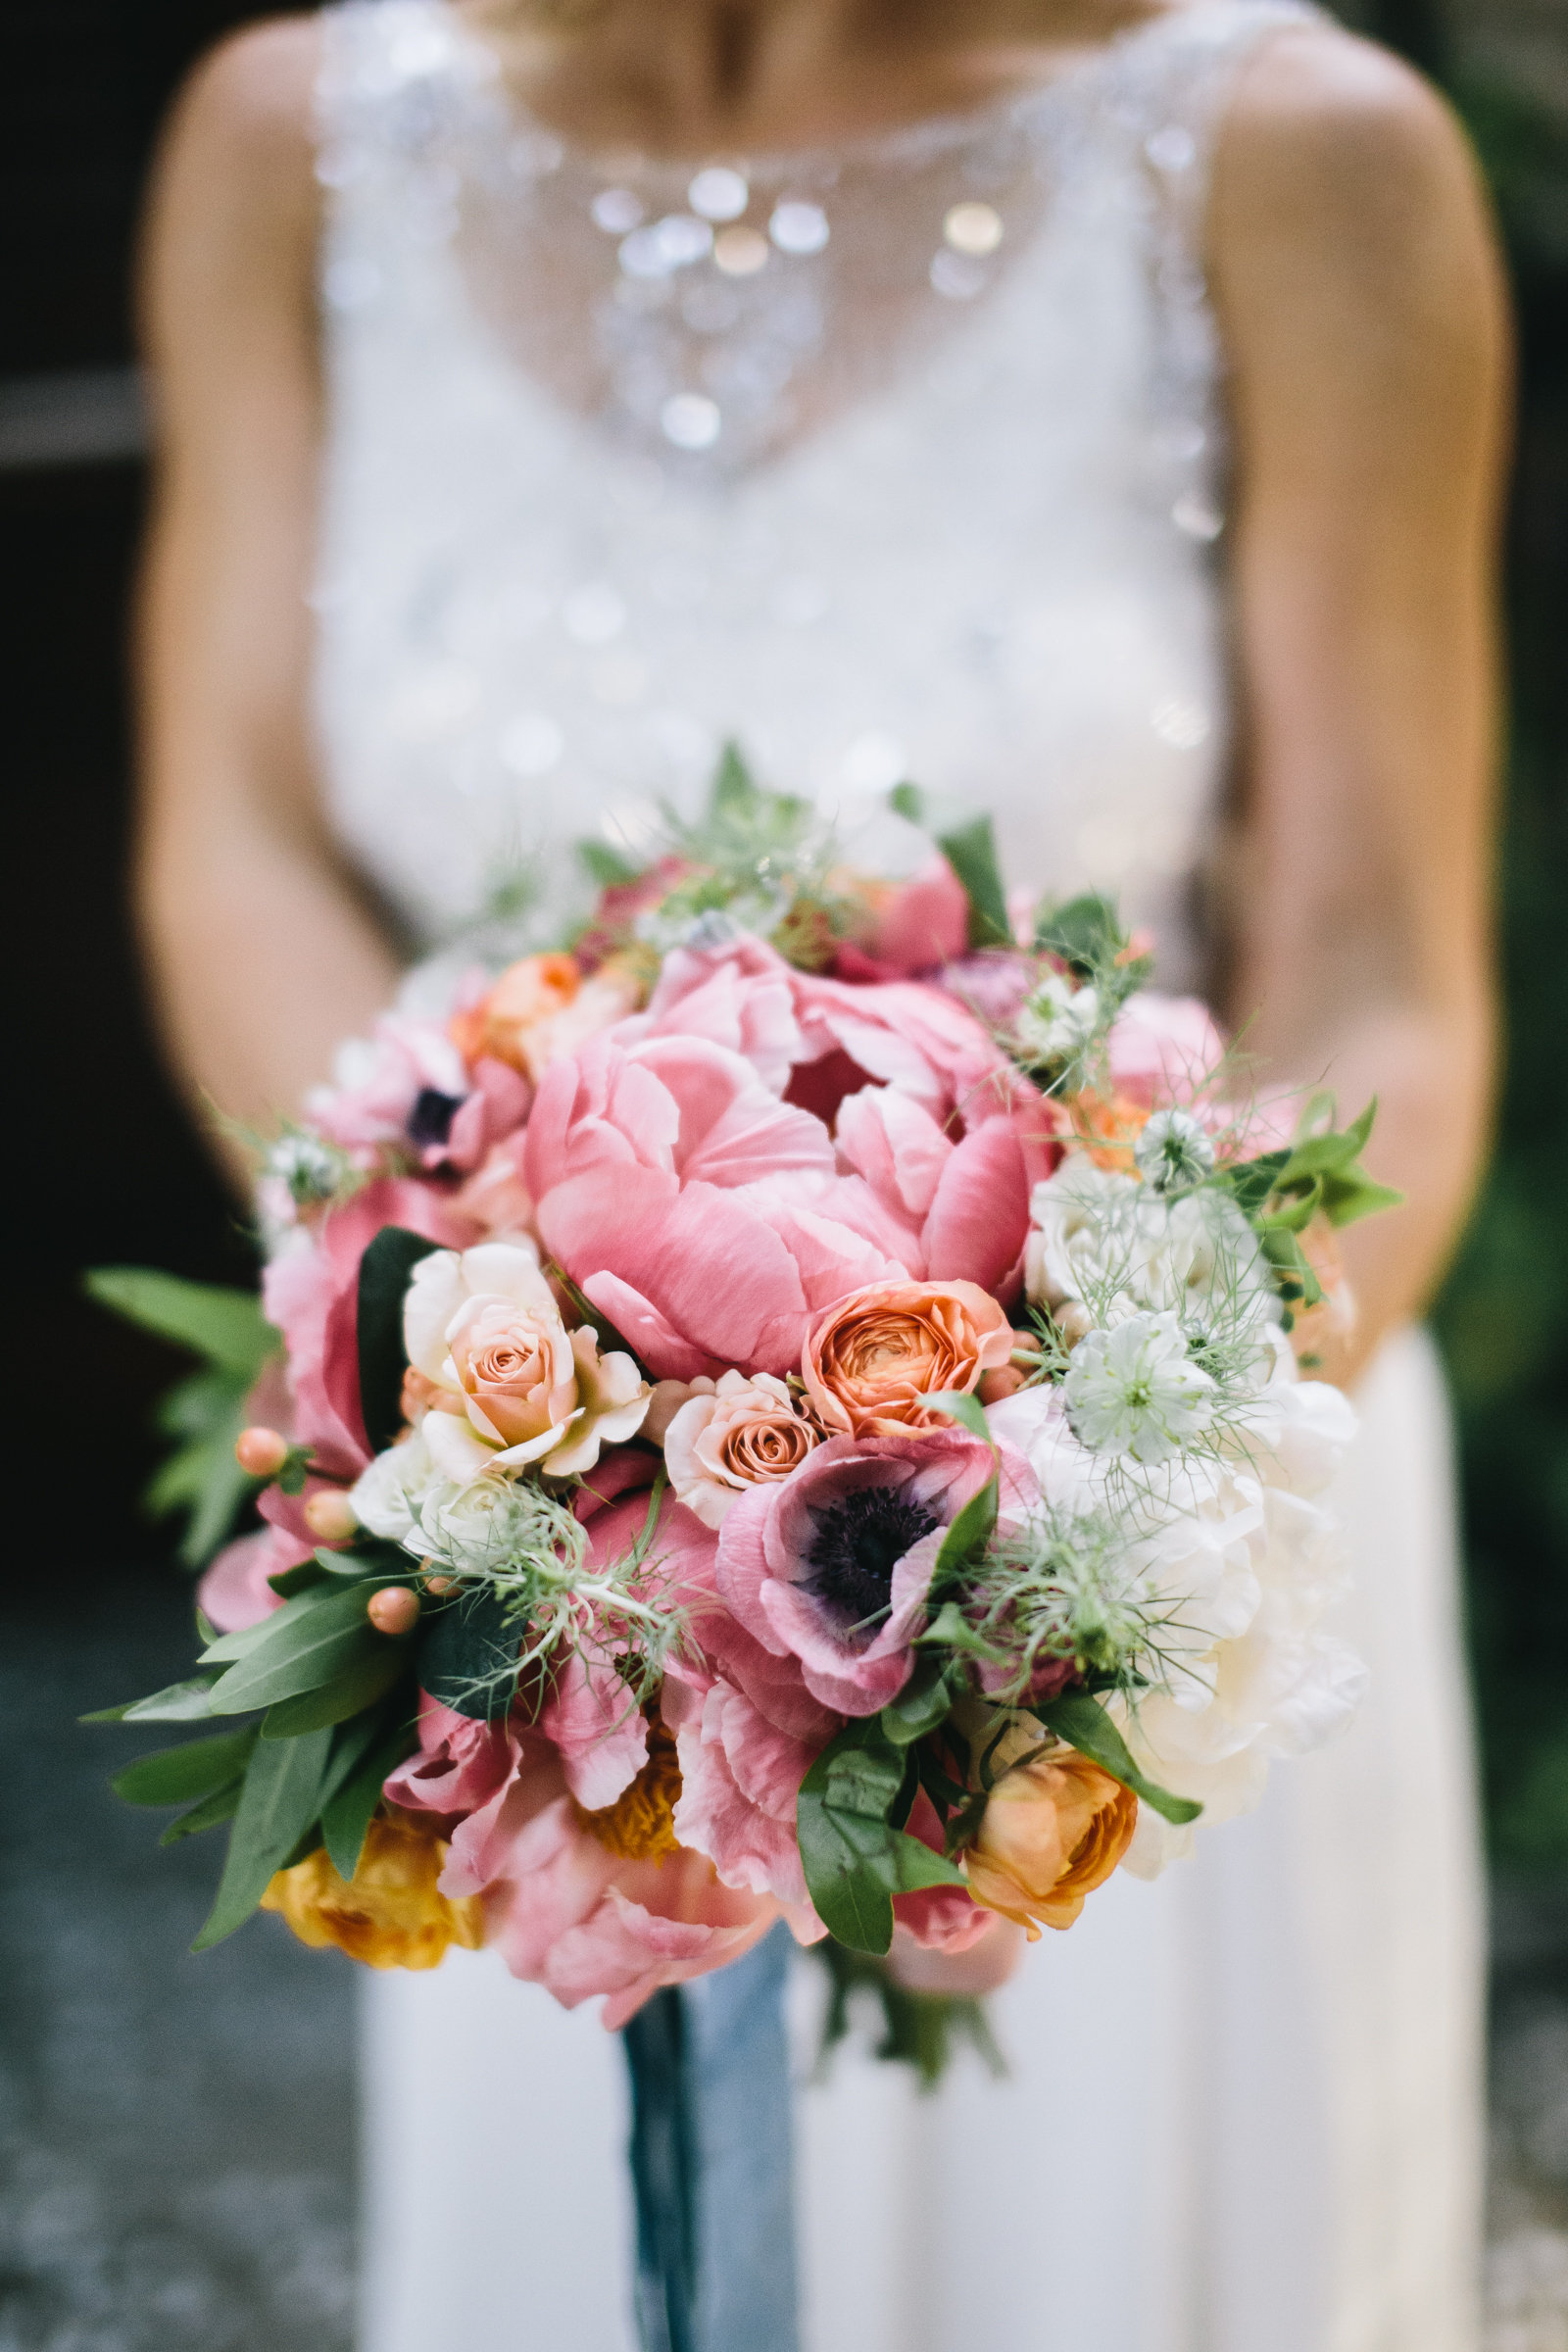 mackensey-alexander-photography-ivory-and-beau-bridal-boutique-from-this-day-forward-wedding-planning-sarah-seven-gwen-savannah-bridal-boutique-savannah-wedding-dresses-savannah-bridal-boutique-savannah-wedding-planner-savannah-weddings-52.jpg